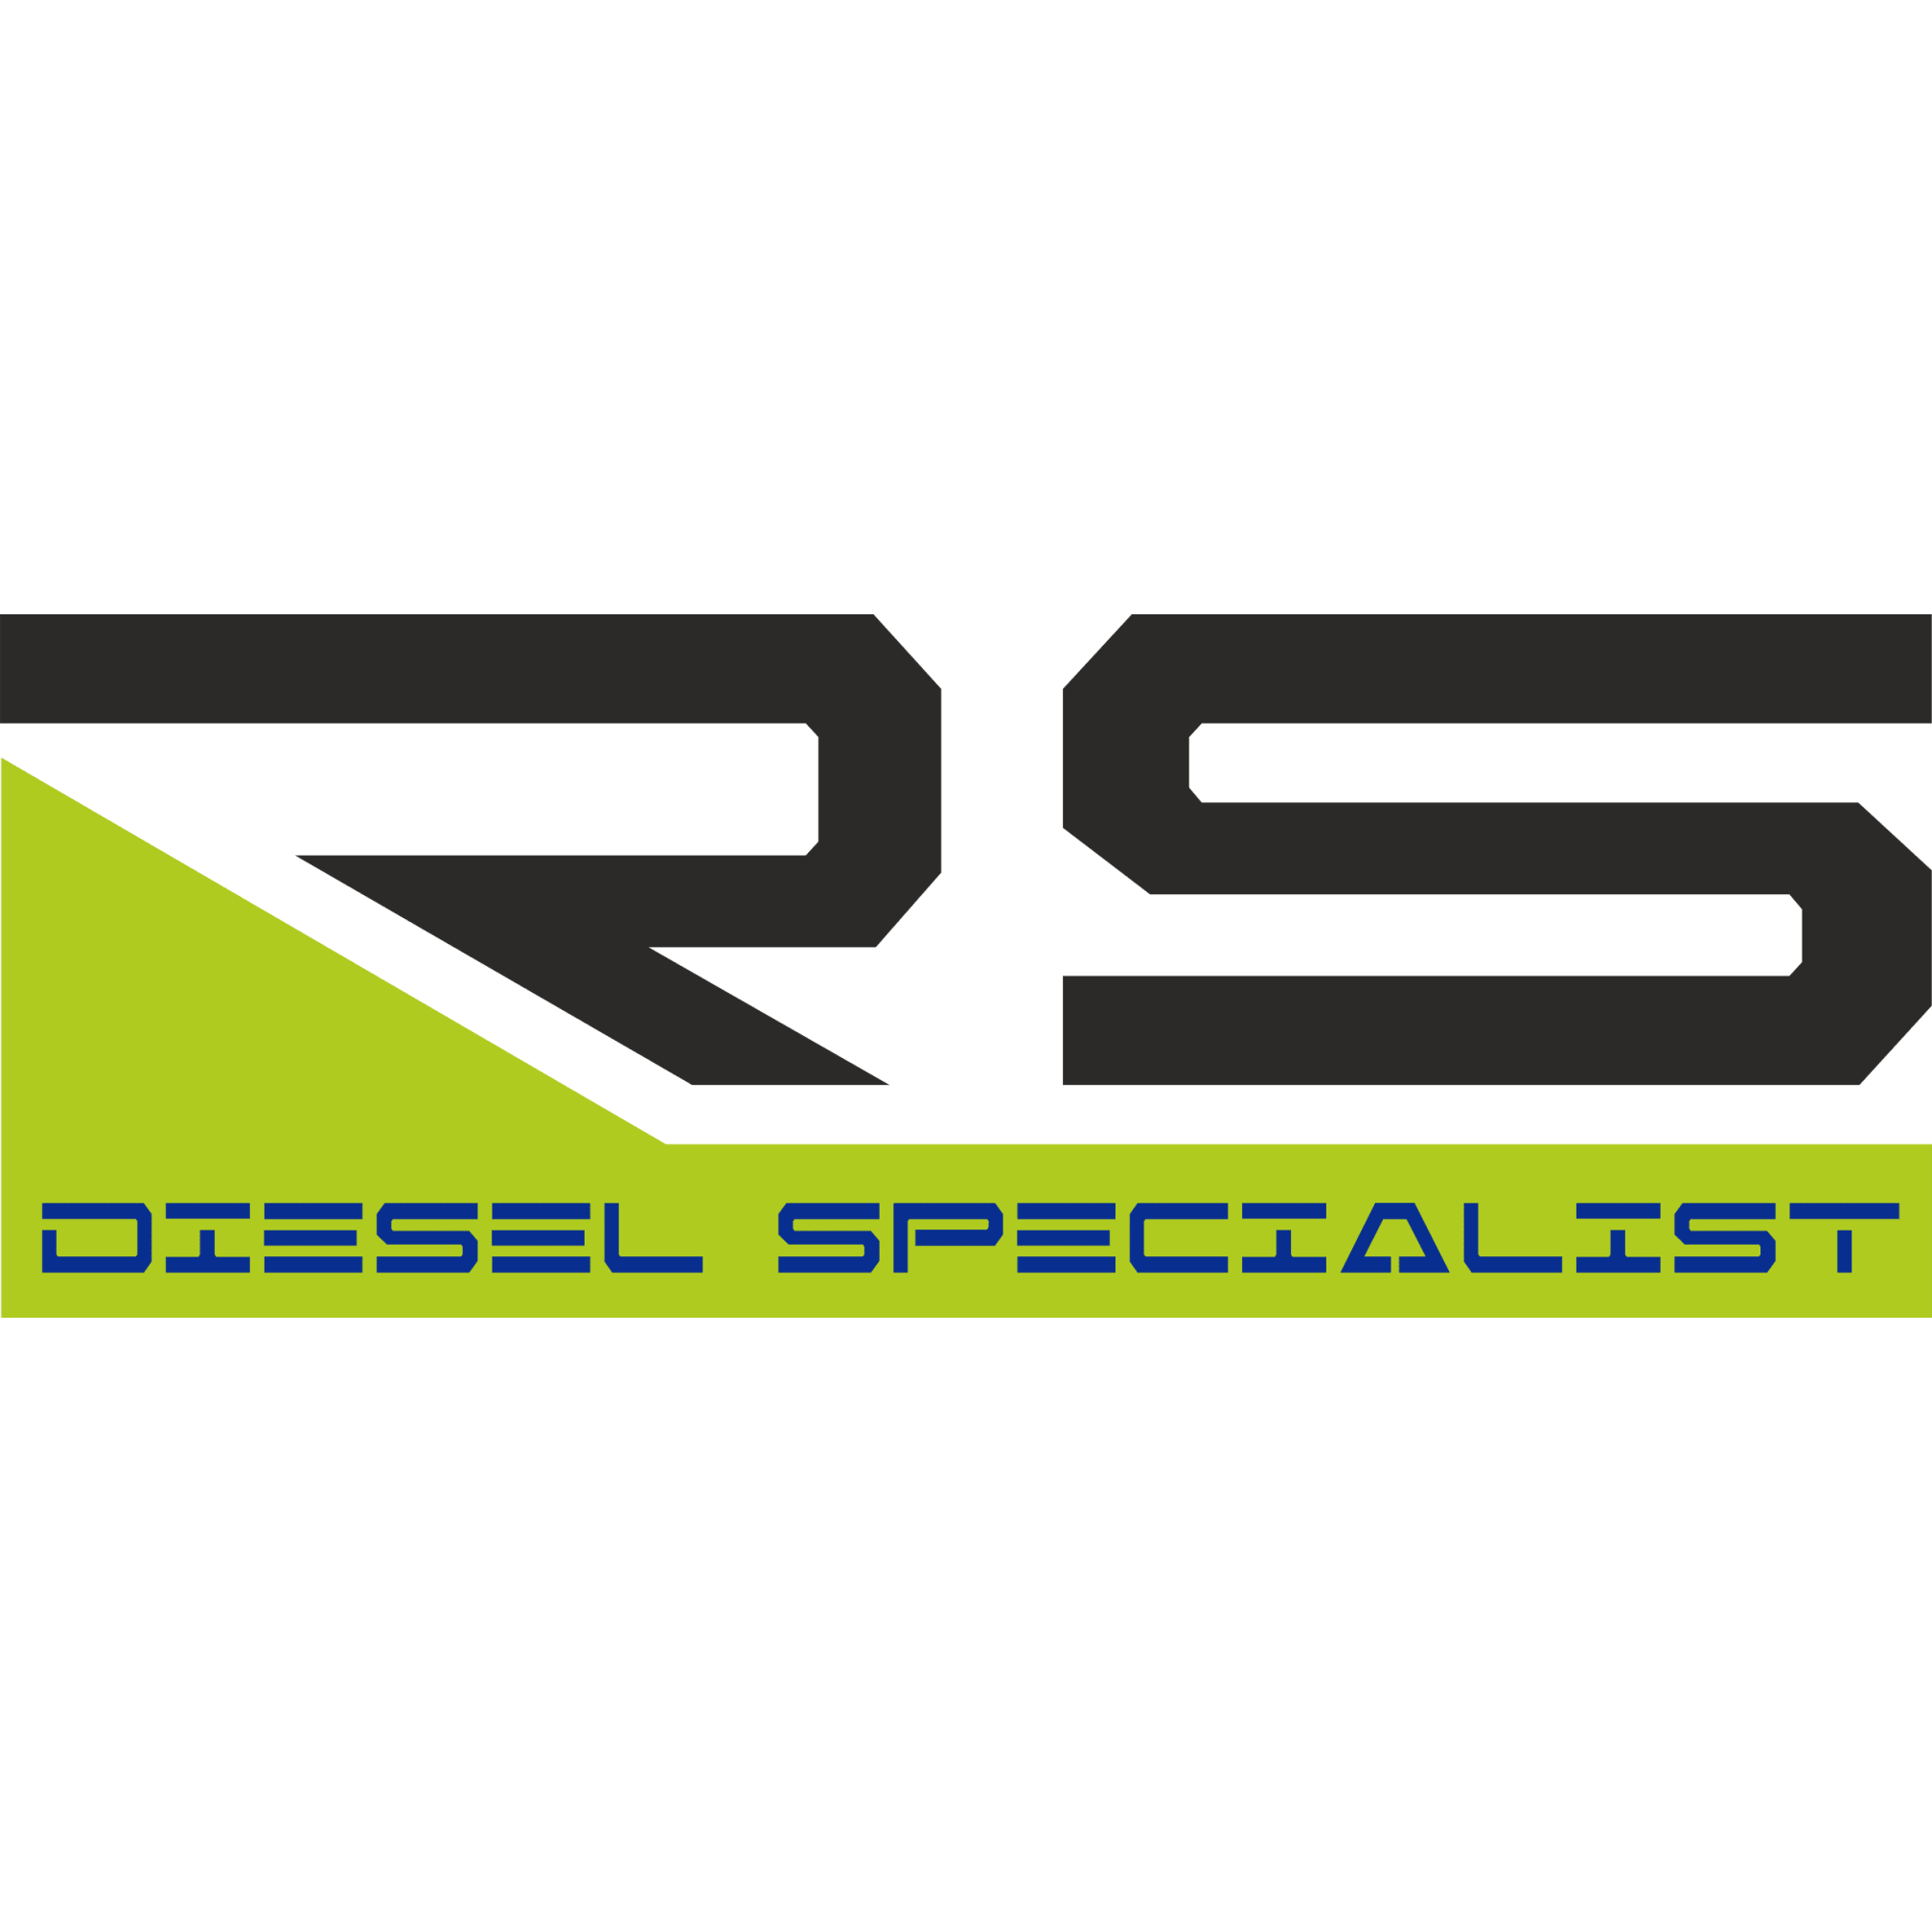 RS Diesel Specialist - Isleworth, London TW7 5ER - 020 3488 1849 | ShowMeLocal.com